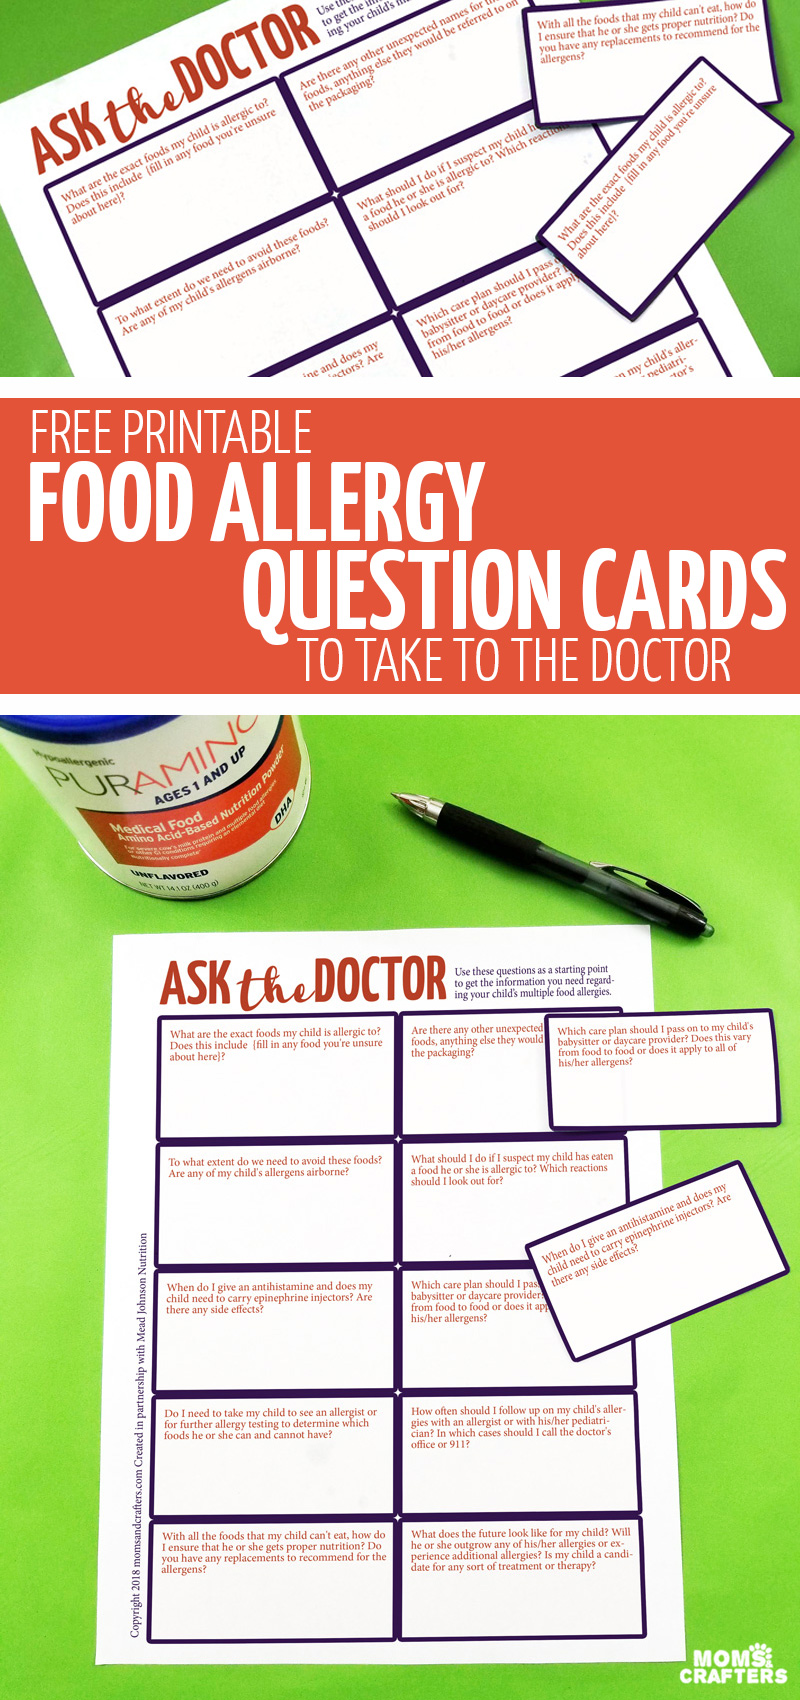 Click for information about #PurAmino and free printable food allergy question cards, perfect for parents who are dealing with kids with multiple food allergies! Ask your doctor parenting questions regarding allergic reactions, nutrition for kids with food allergies, management, and more!